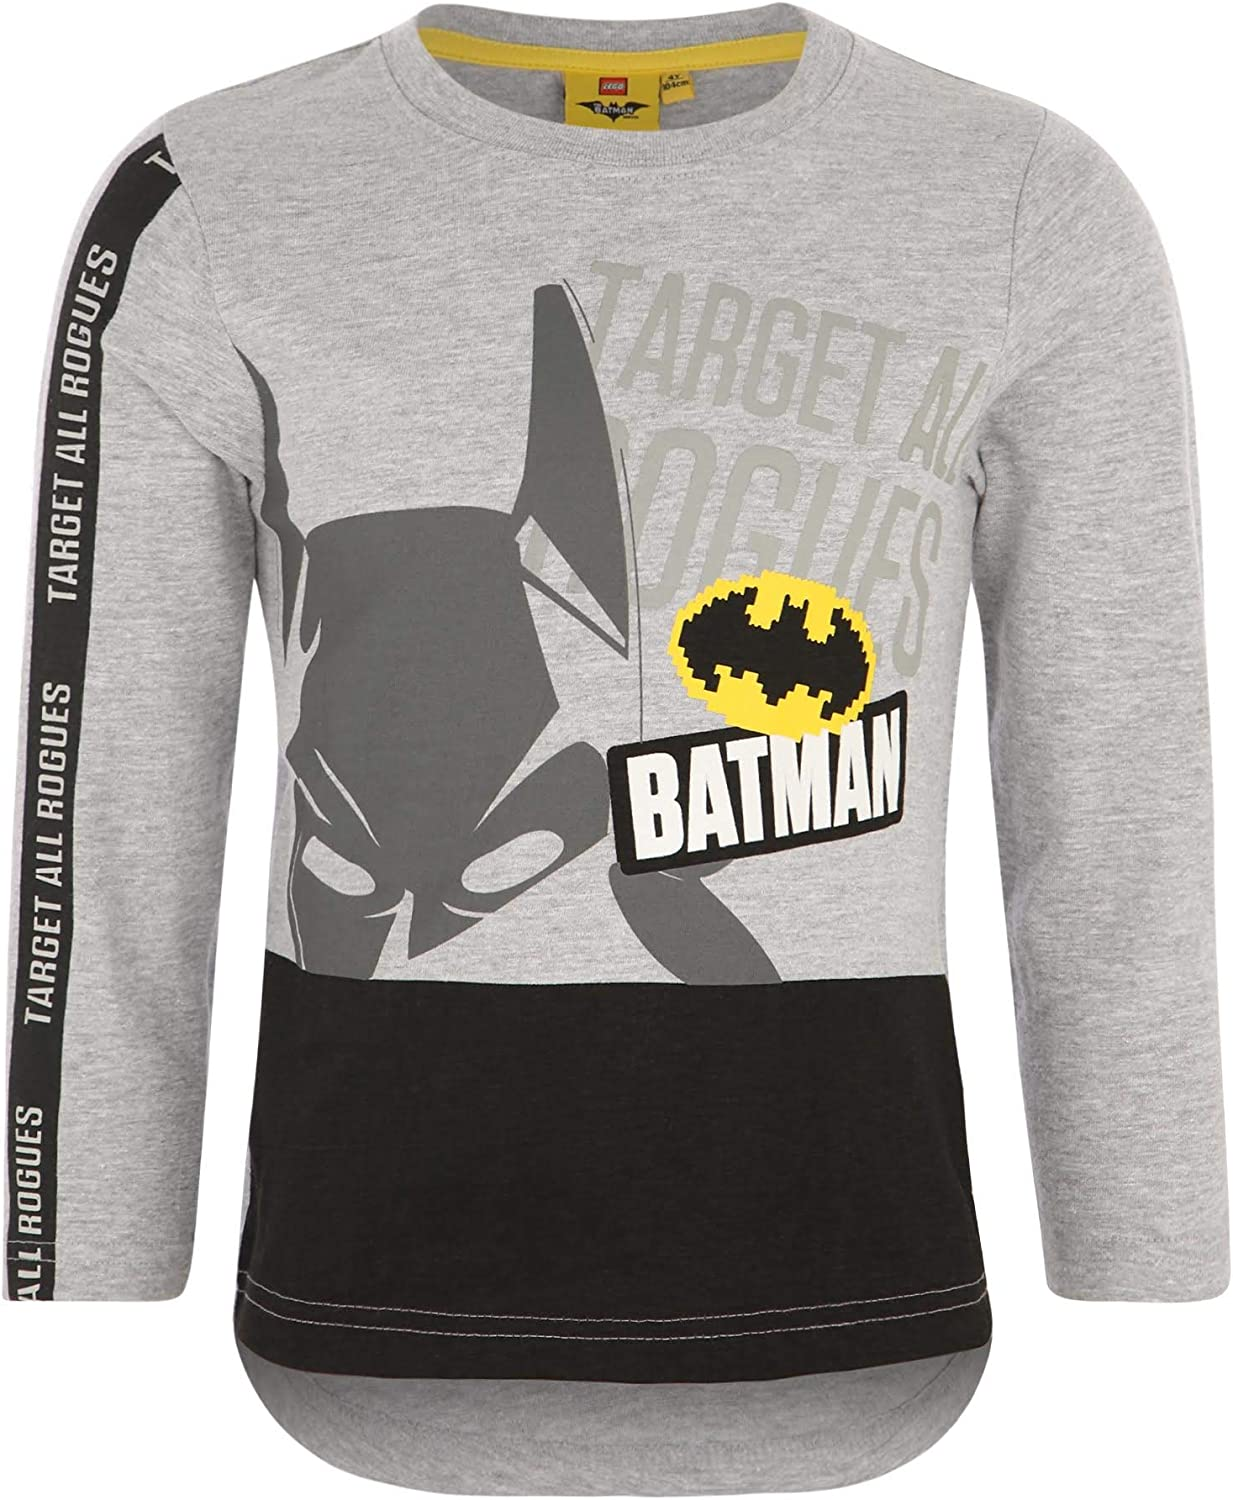 LEGO Batman Tshirts L//S 140, Grey